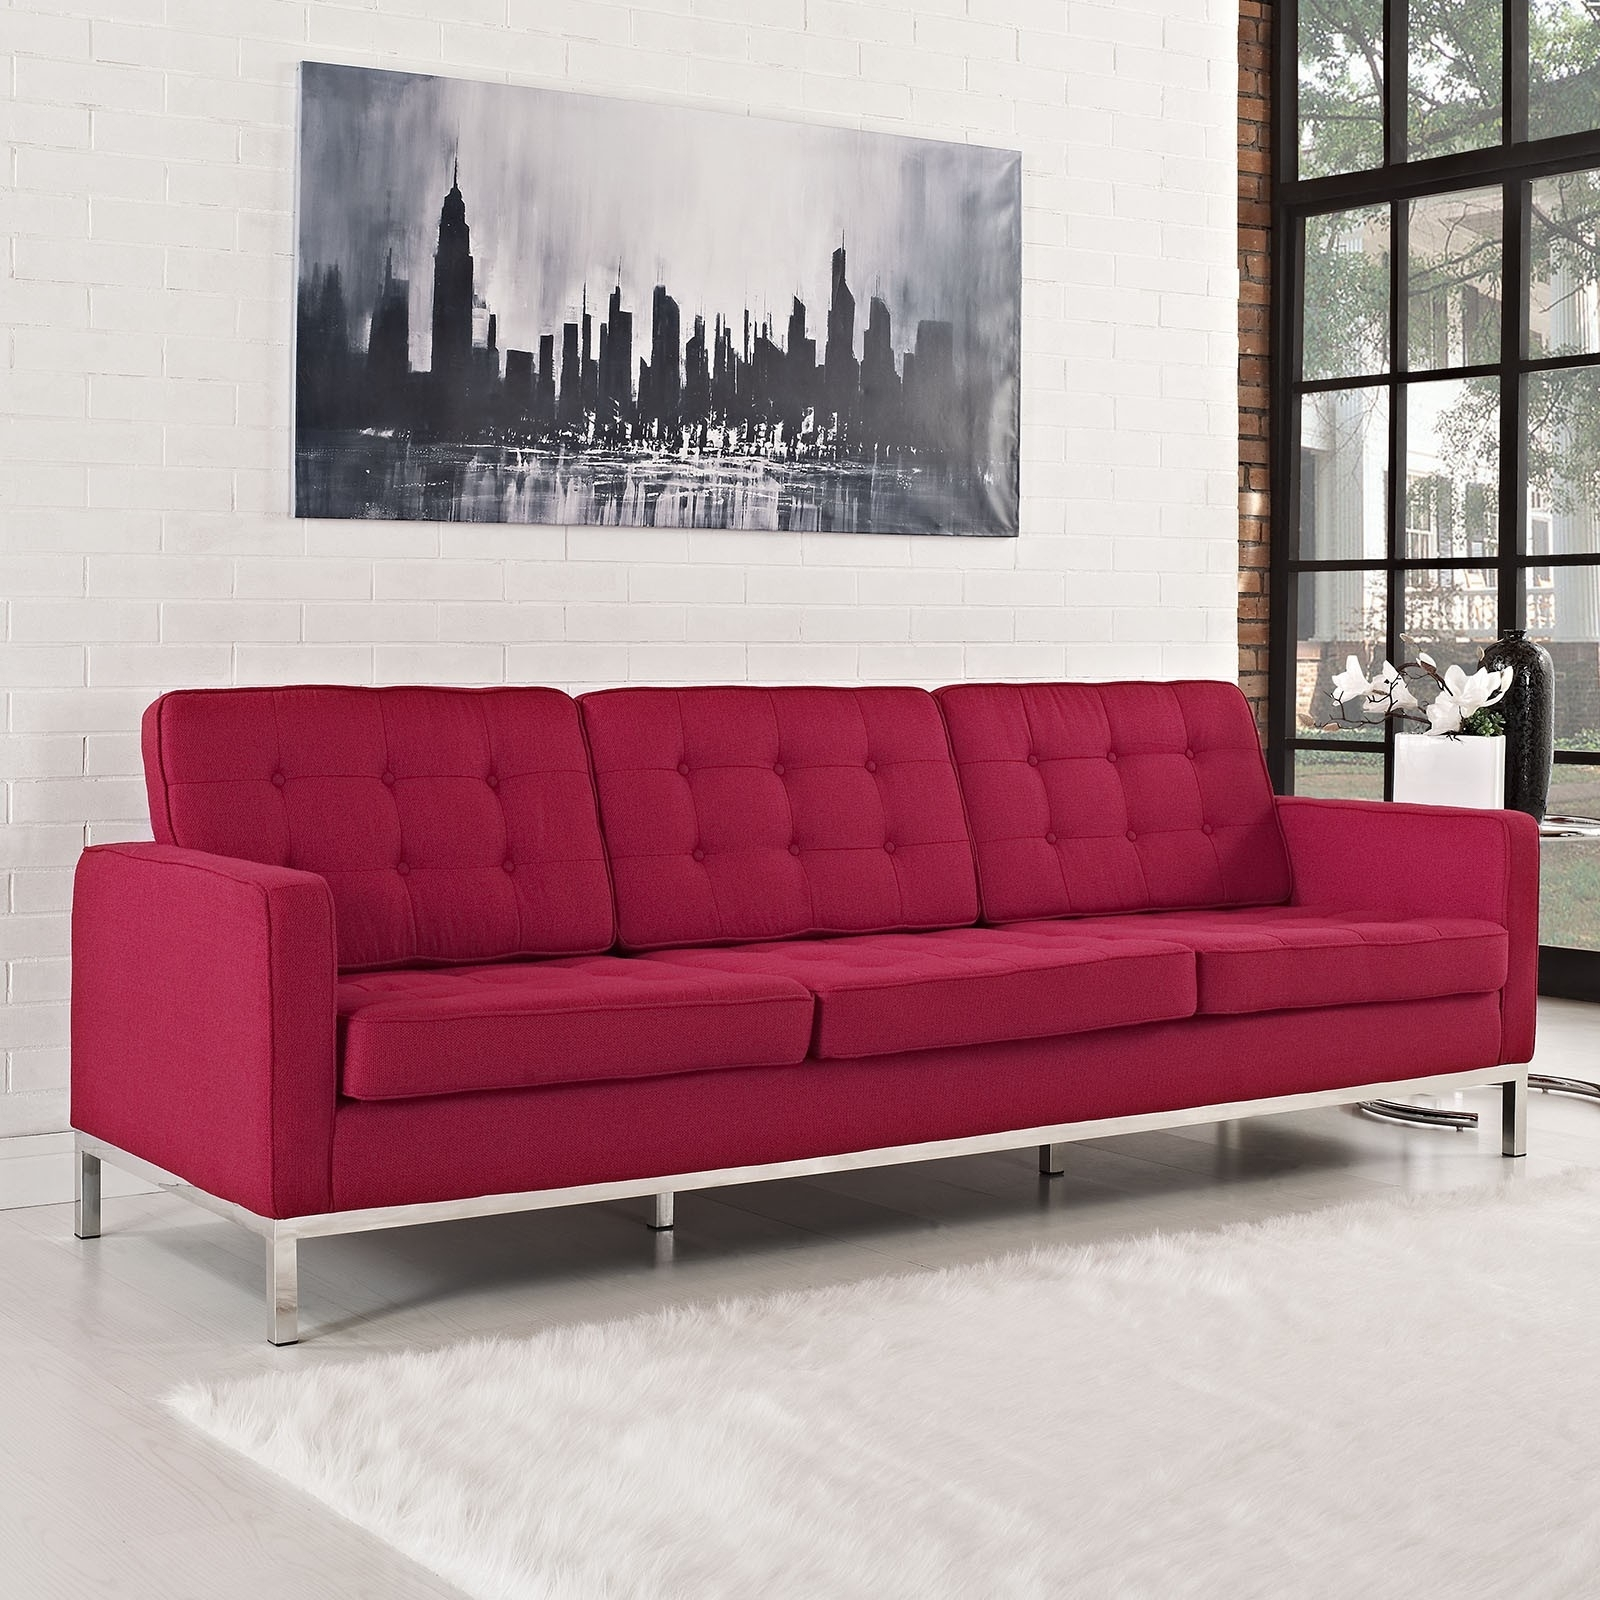 Popular Sofa : View Florence Knoll Style Sofa Interior Design For Home With Regard To Florence Knoll Style Sofas (View 5 of 15)